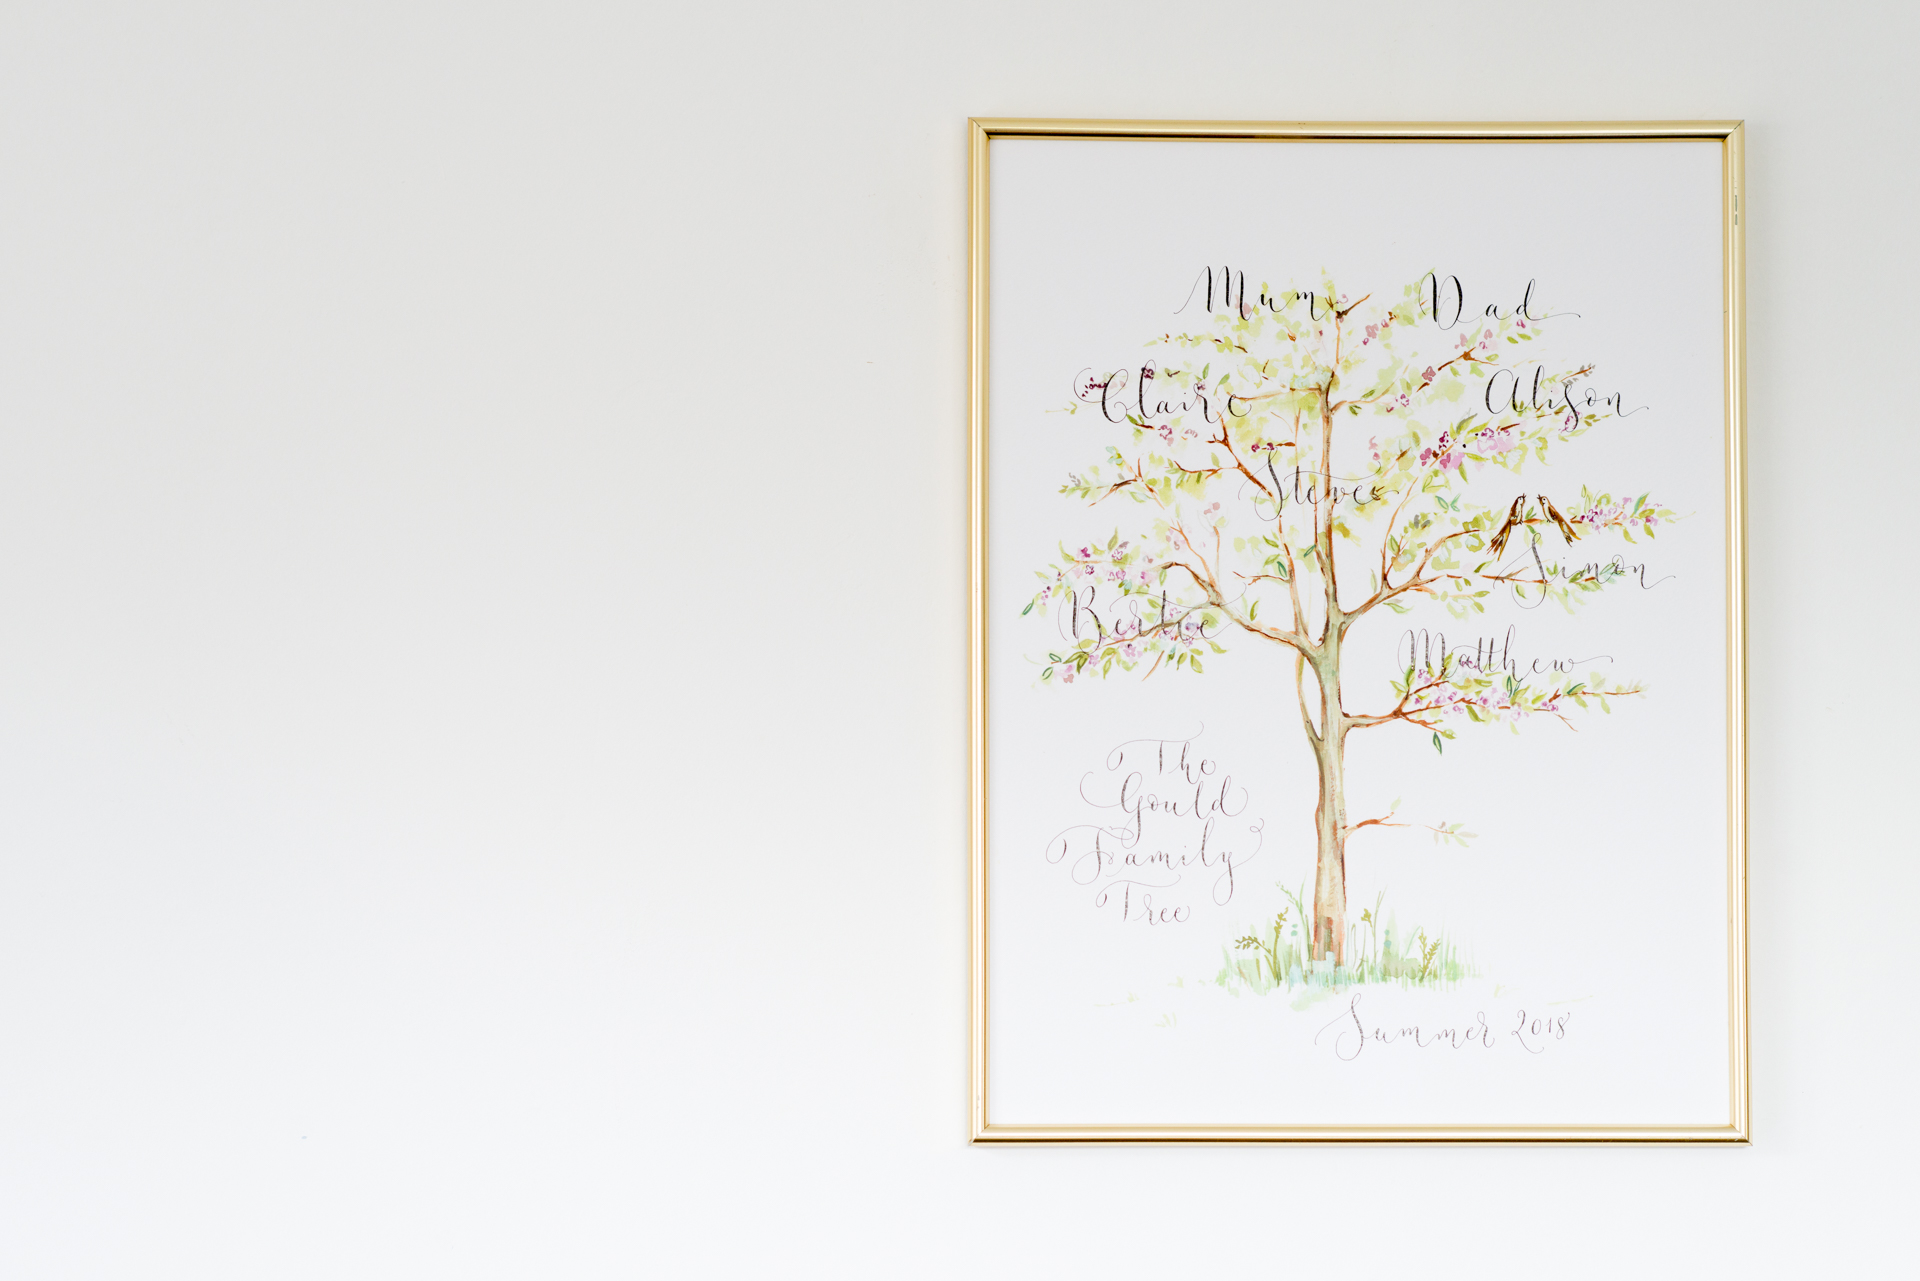 Happy Cyber Monday! Our sale is STILL ON!! 30% off family trees and more…